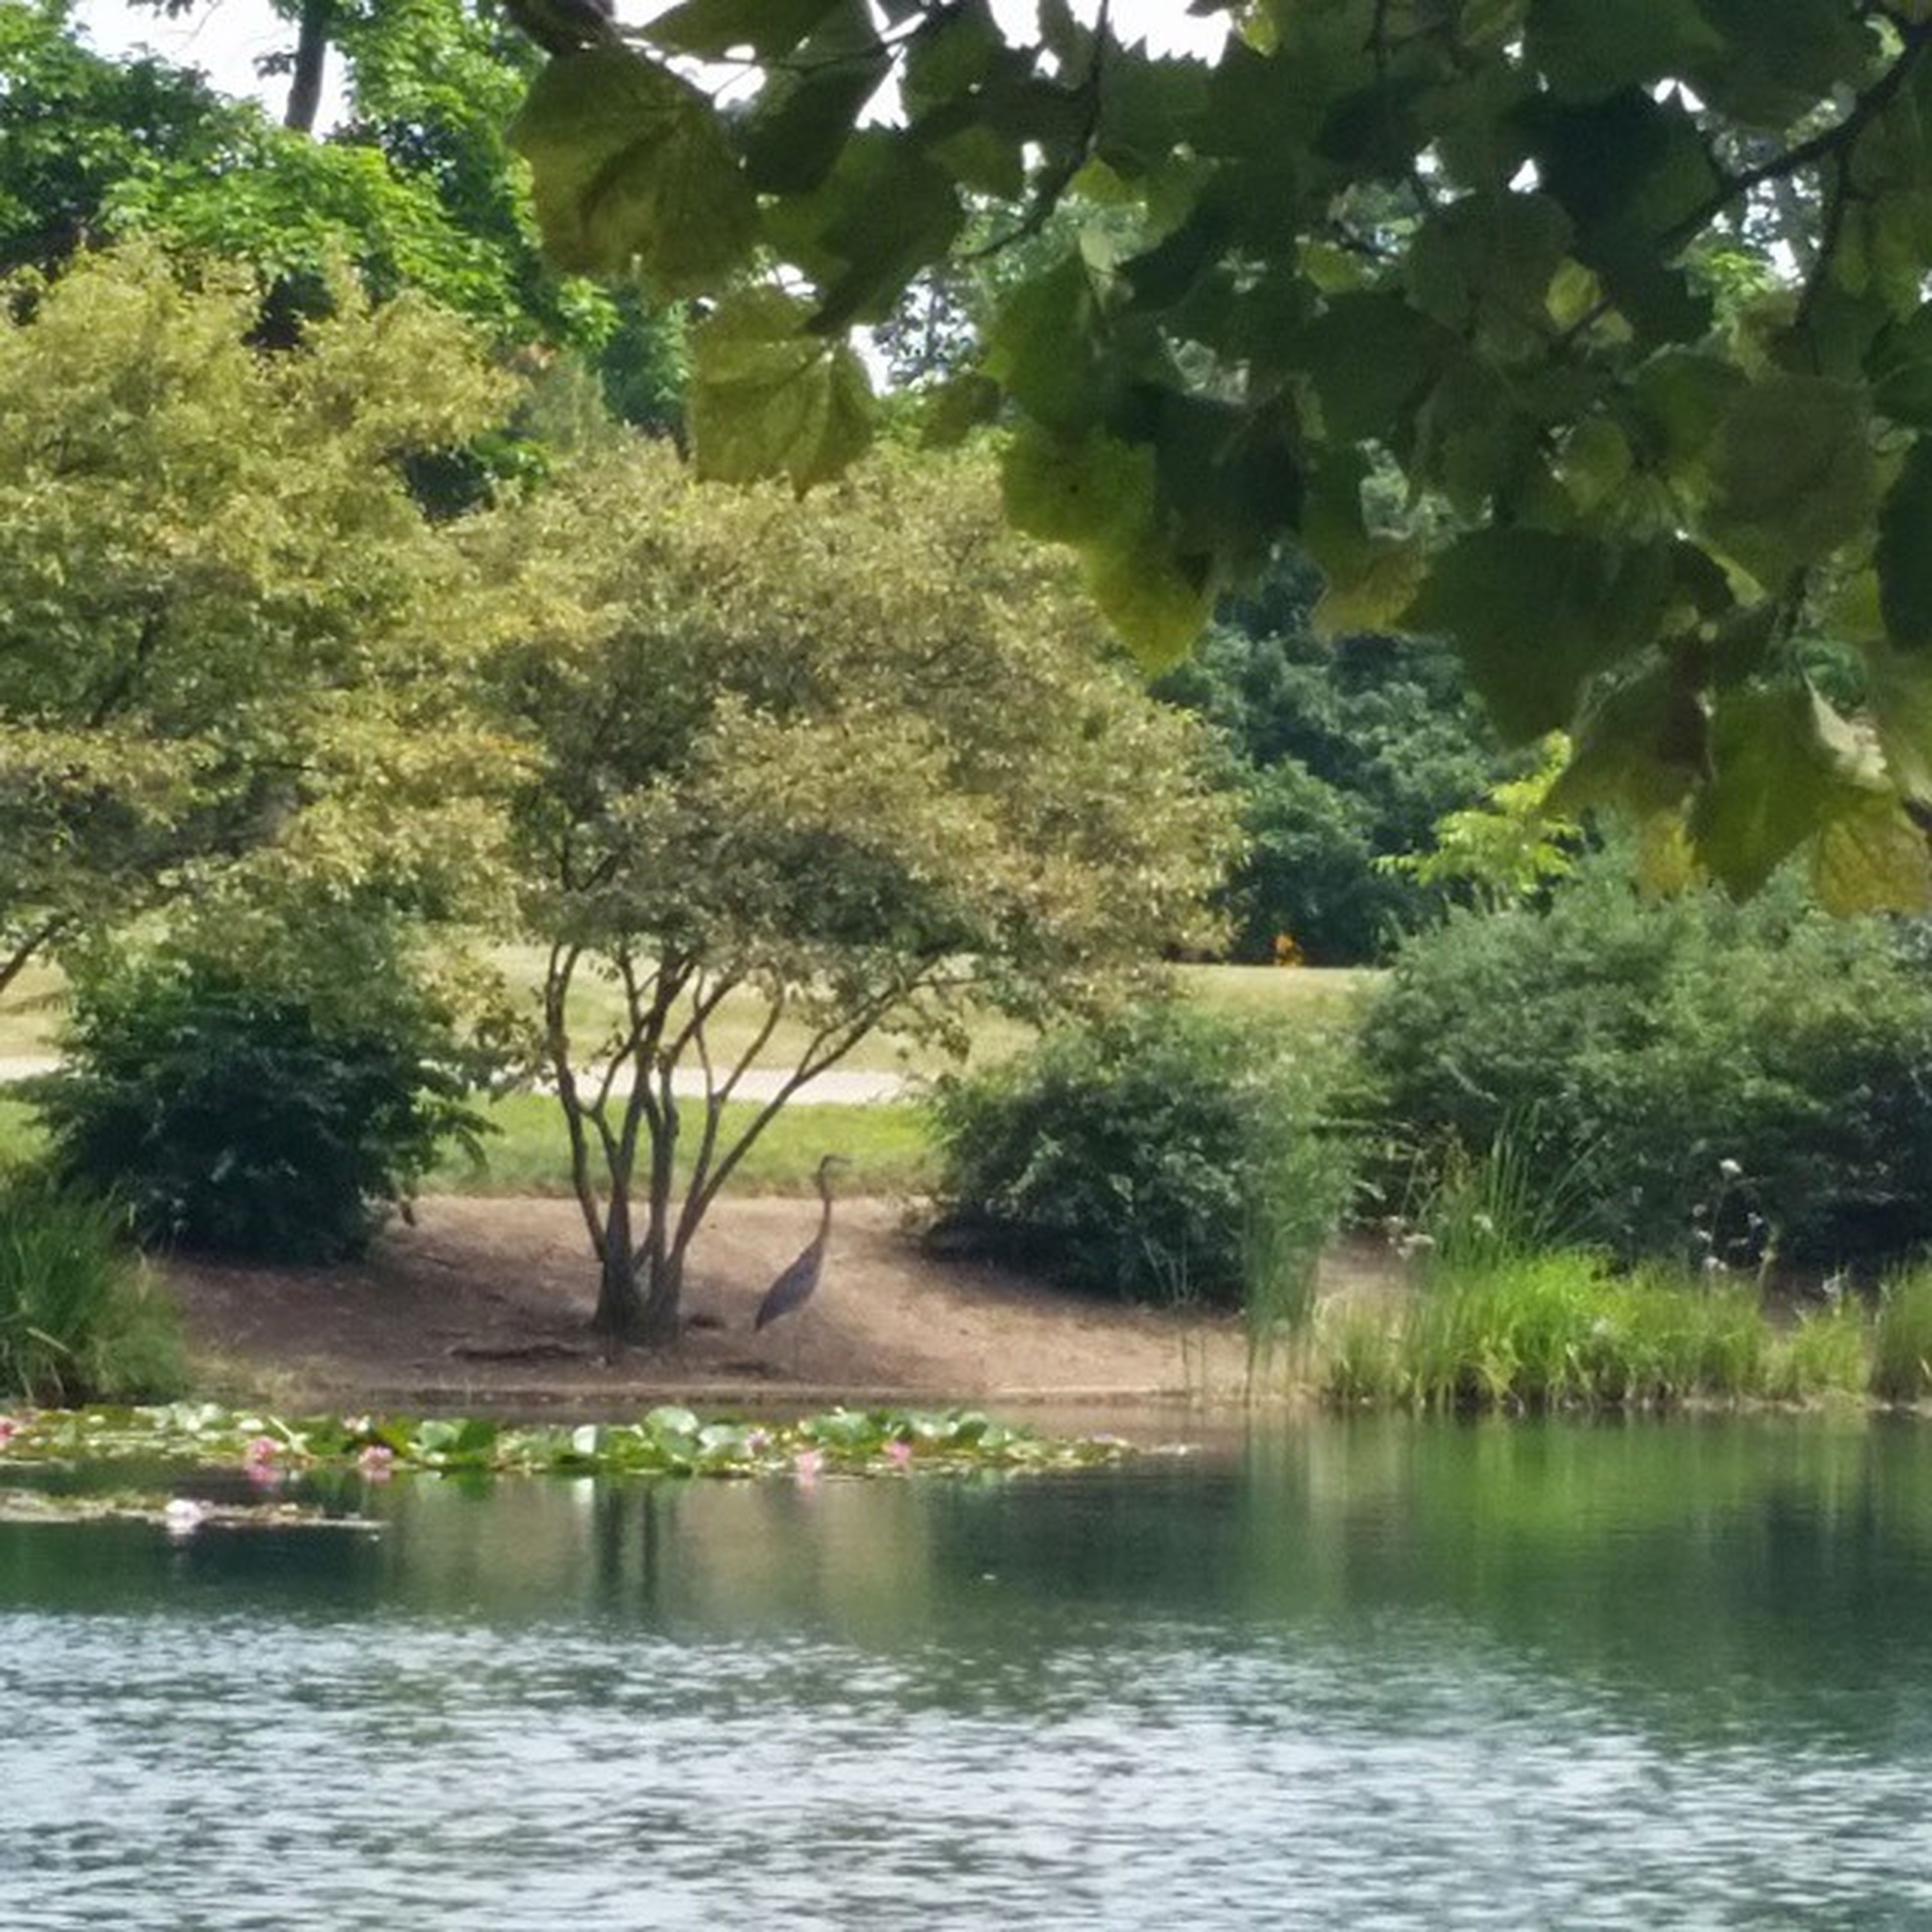 tree, water, growth, tranquility, waterfront, nature, tranquil scene, beauty in nature, green color, river, scenics, reflection, branch, lake, park - man made space, pond, plant, outdoors, idyllic, day